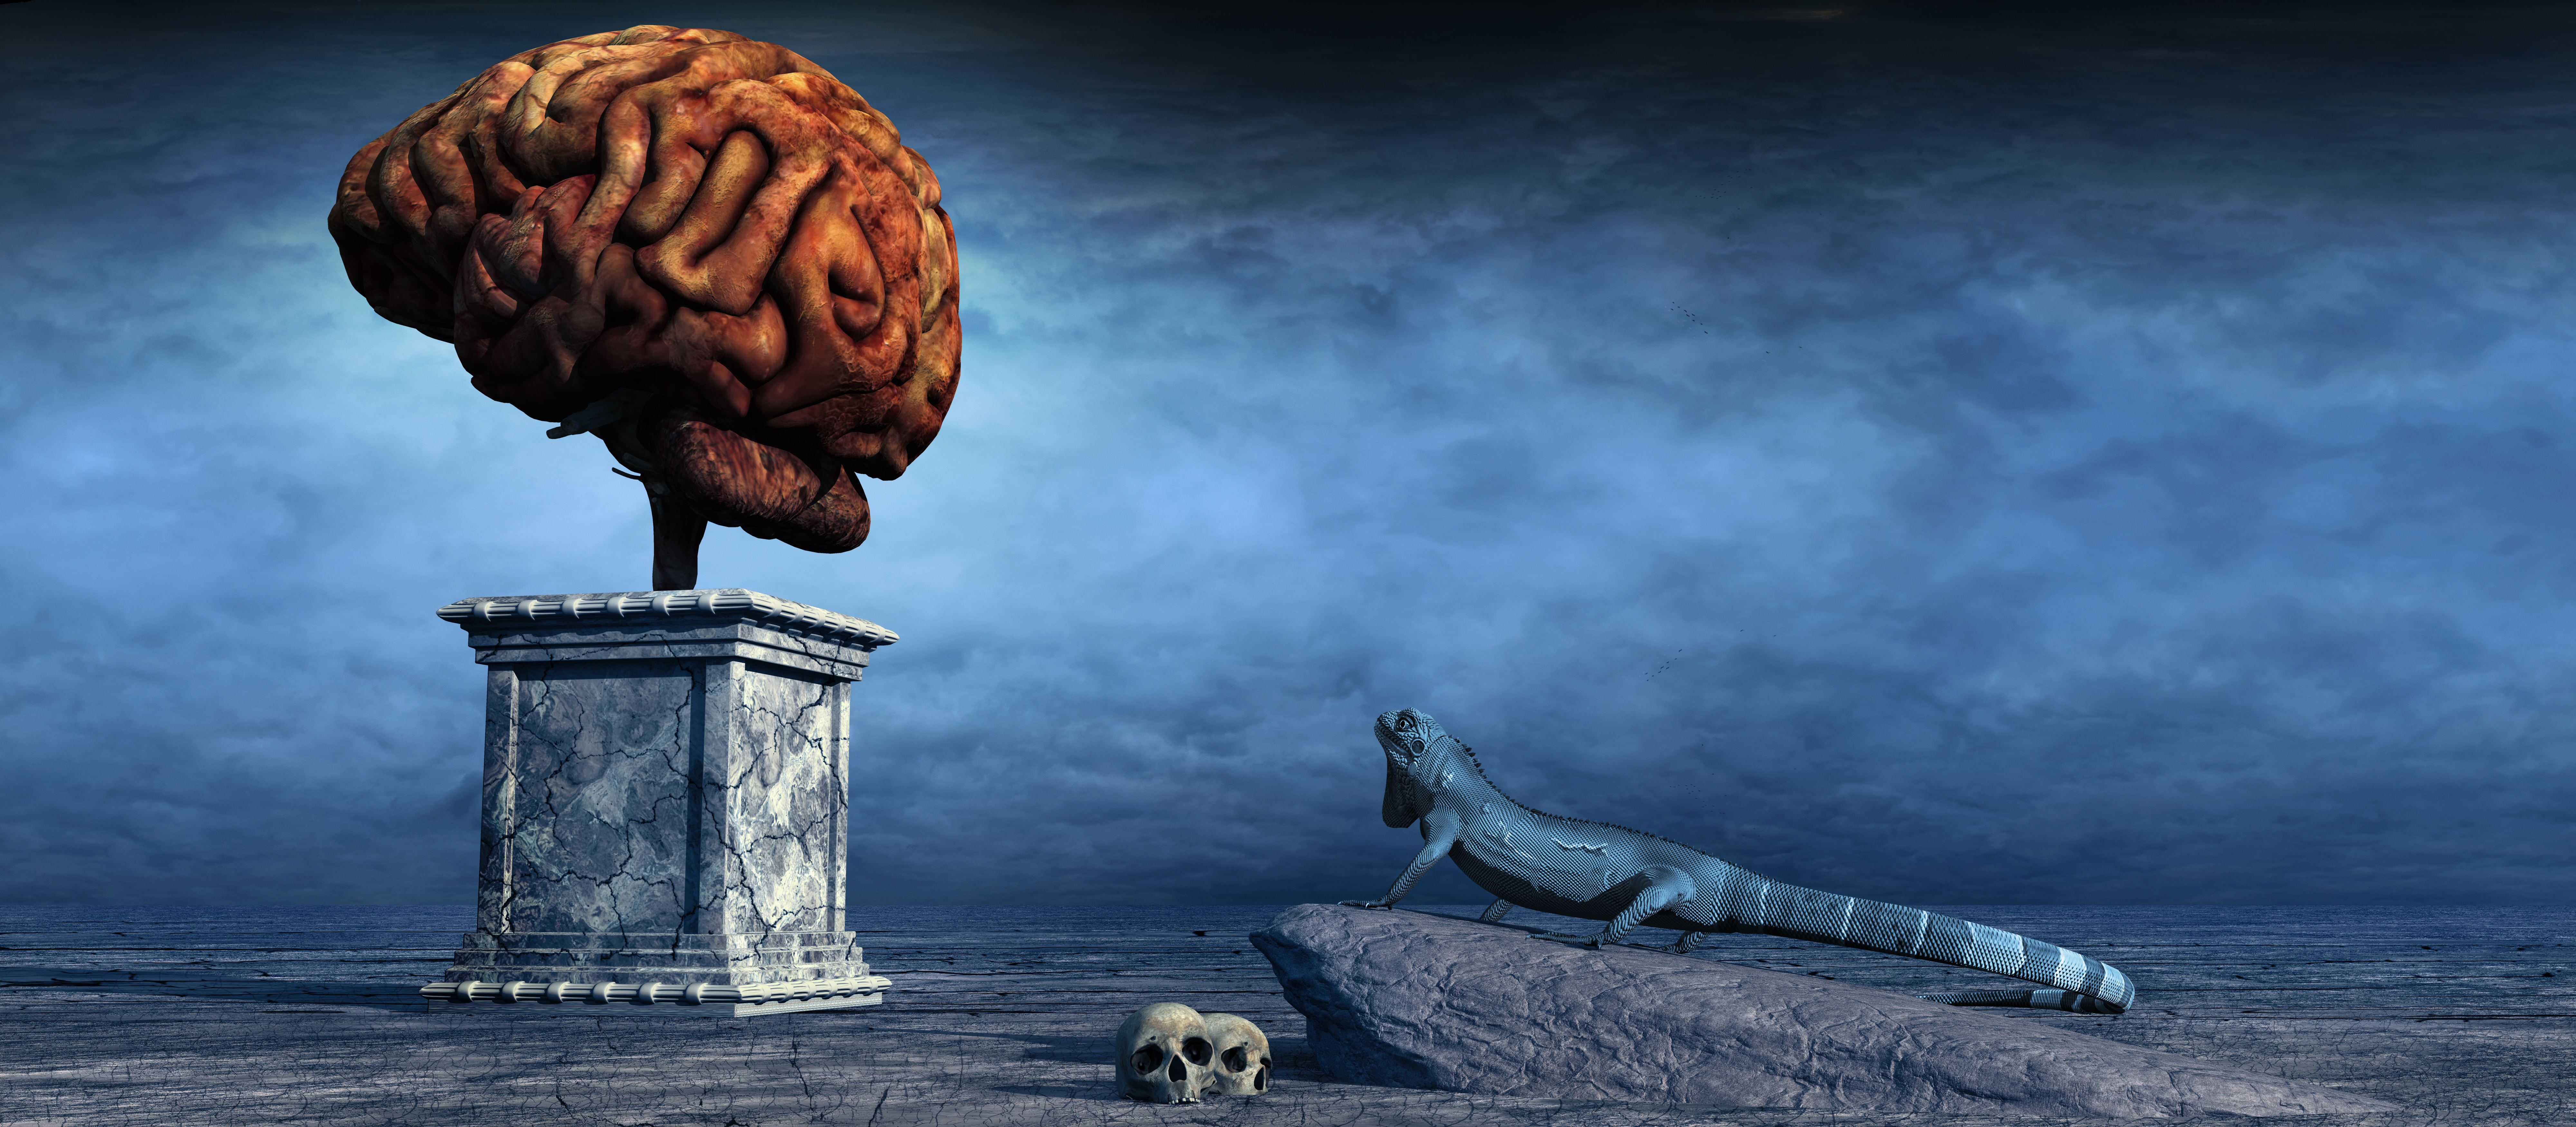 Surreal scene with a lizard and a monument depicting the brain